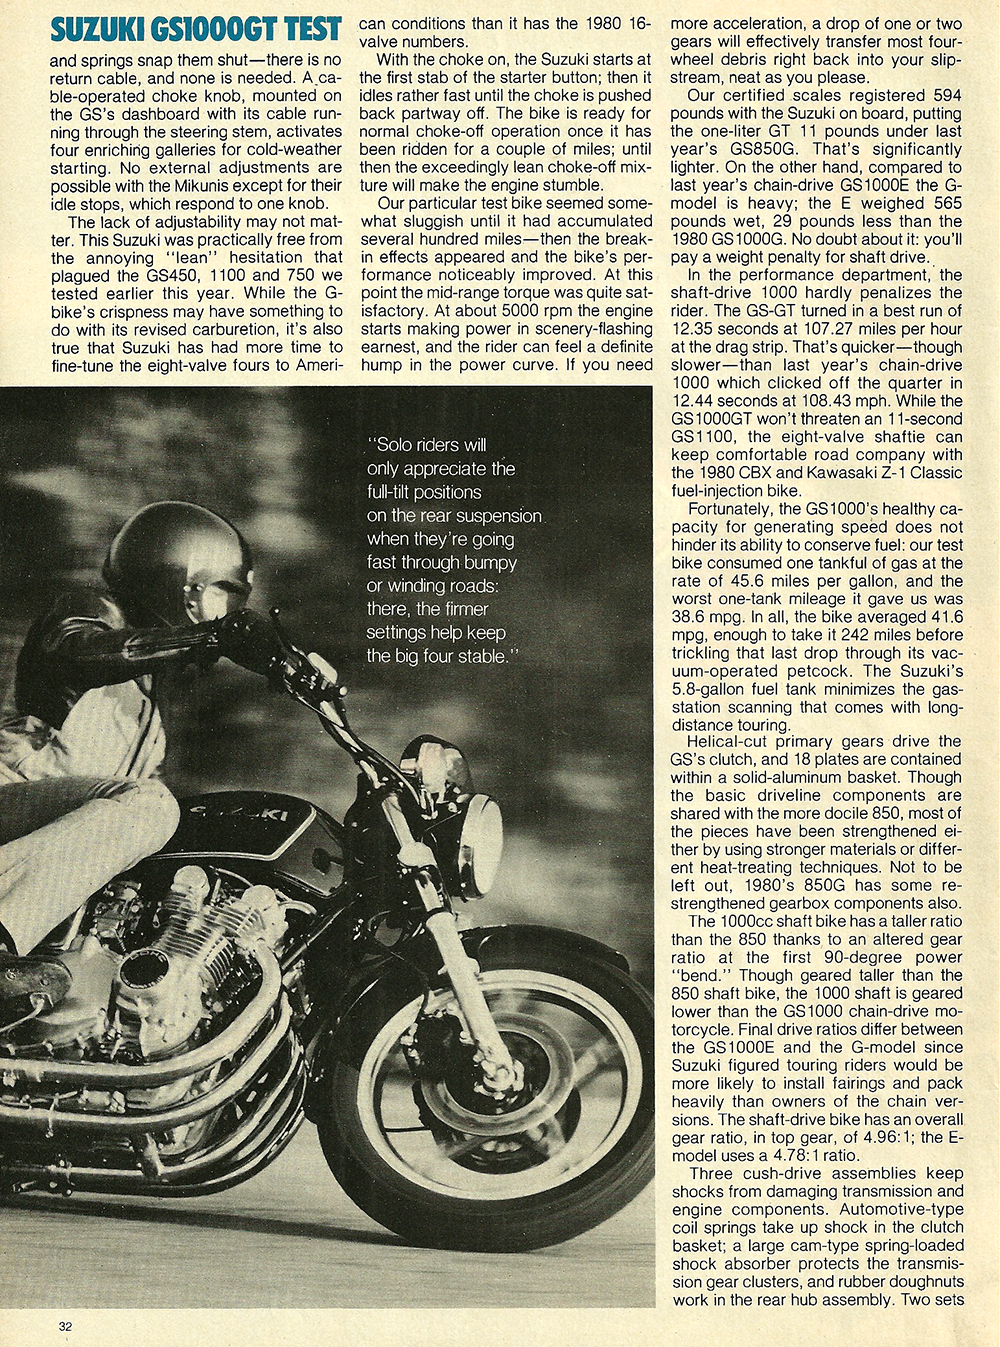 1980 Suzuki GS1000GT road test 3.jpg